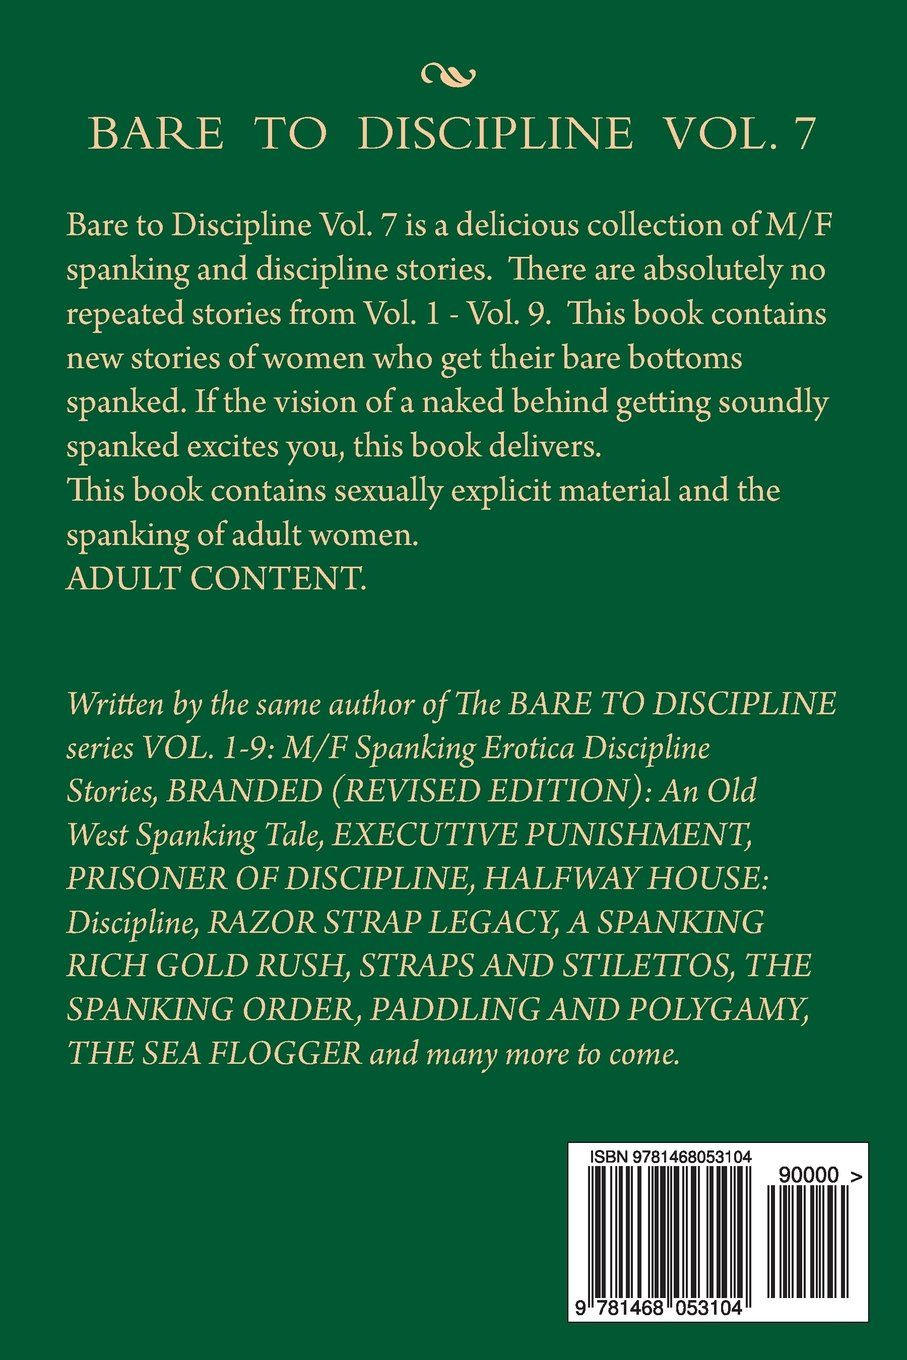 BARE TO DISCIPLINE Vol. 5: M/F SPANKING EROTICA DISCIPLINE STORIES